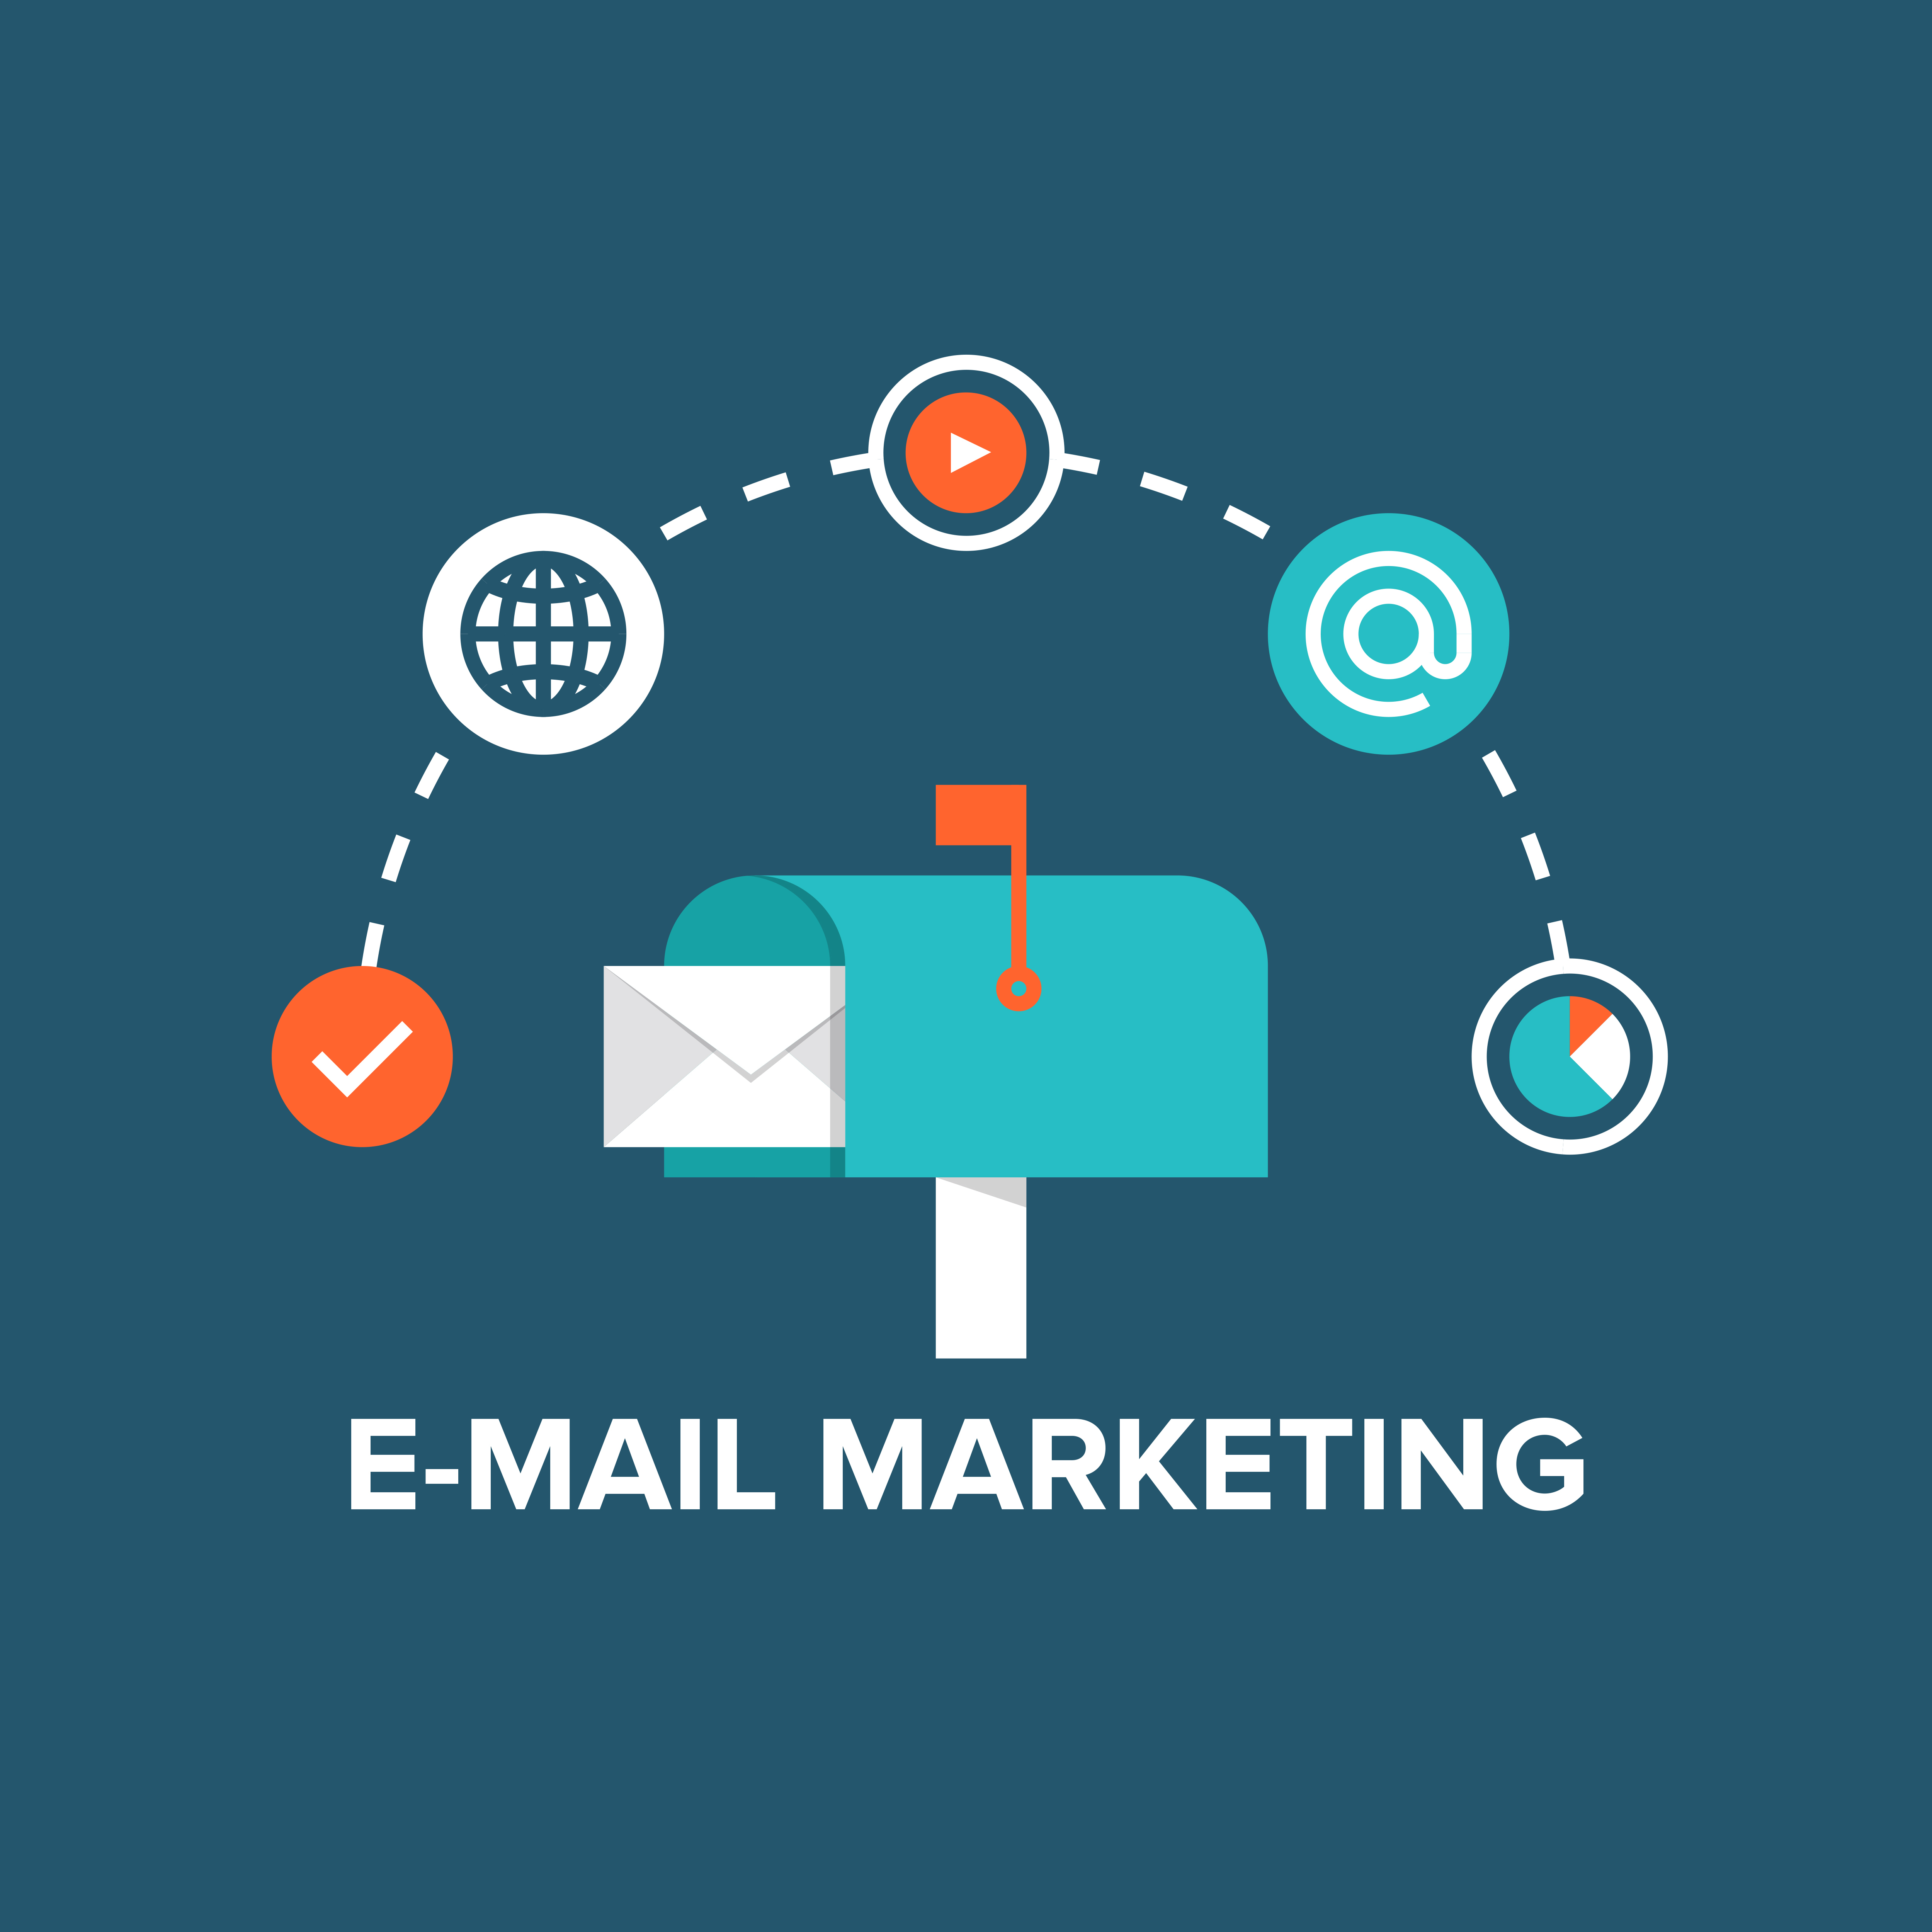 Email-Marketing Trends